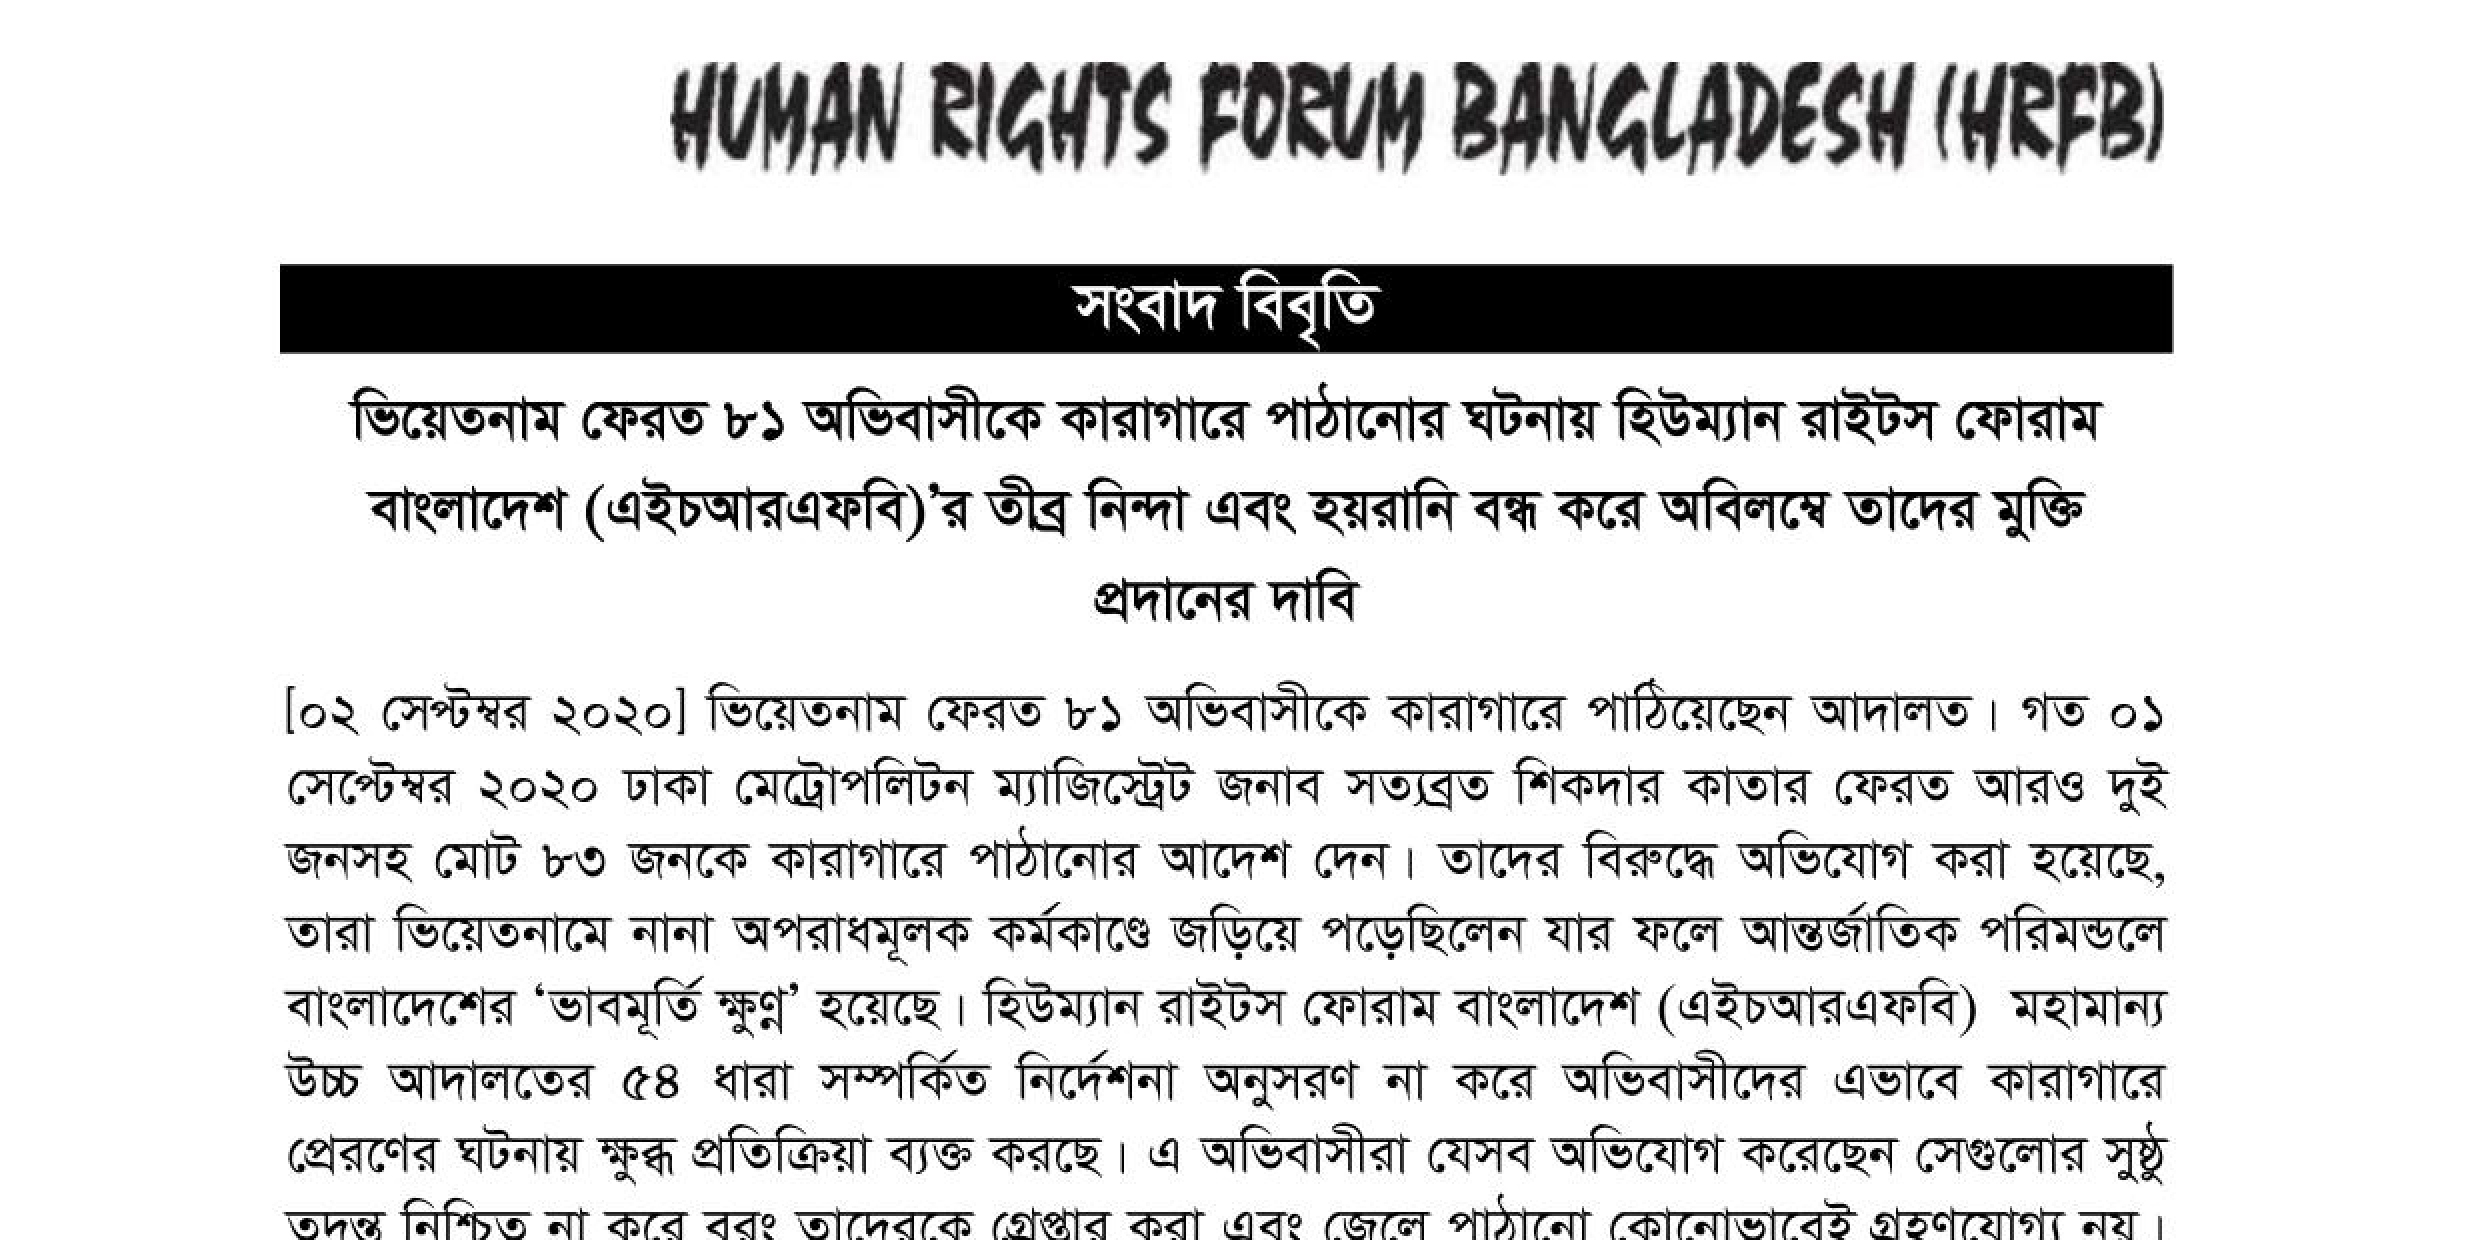 Arrest of the Migrant workers: Human Rights Forum Bangladesh (HRFB)'s Condemnation